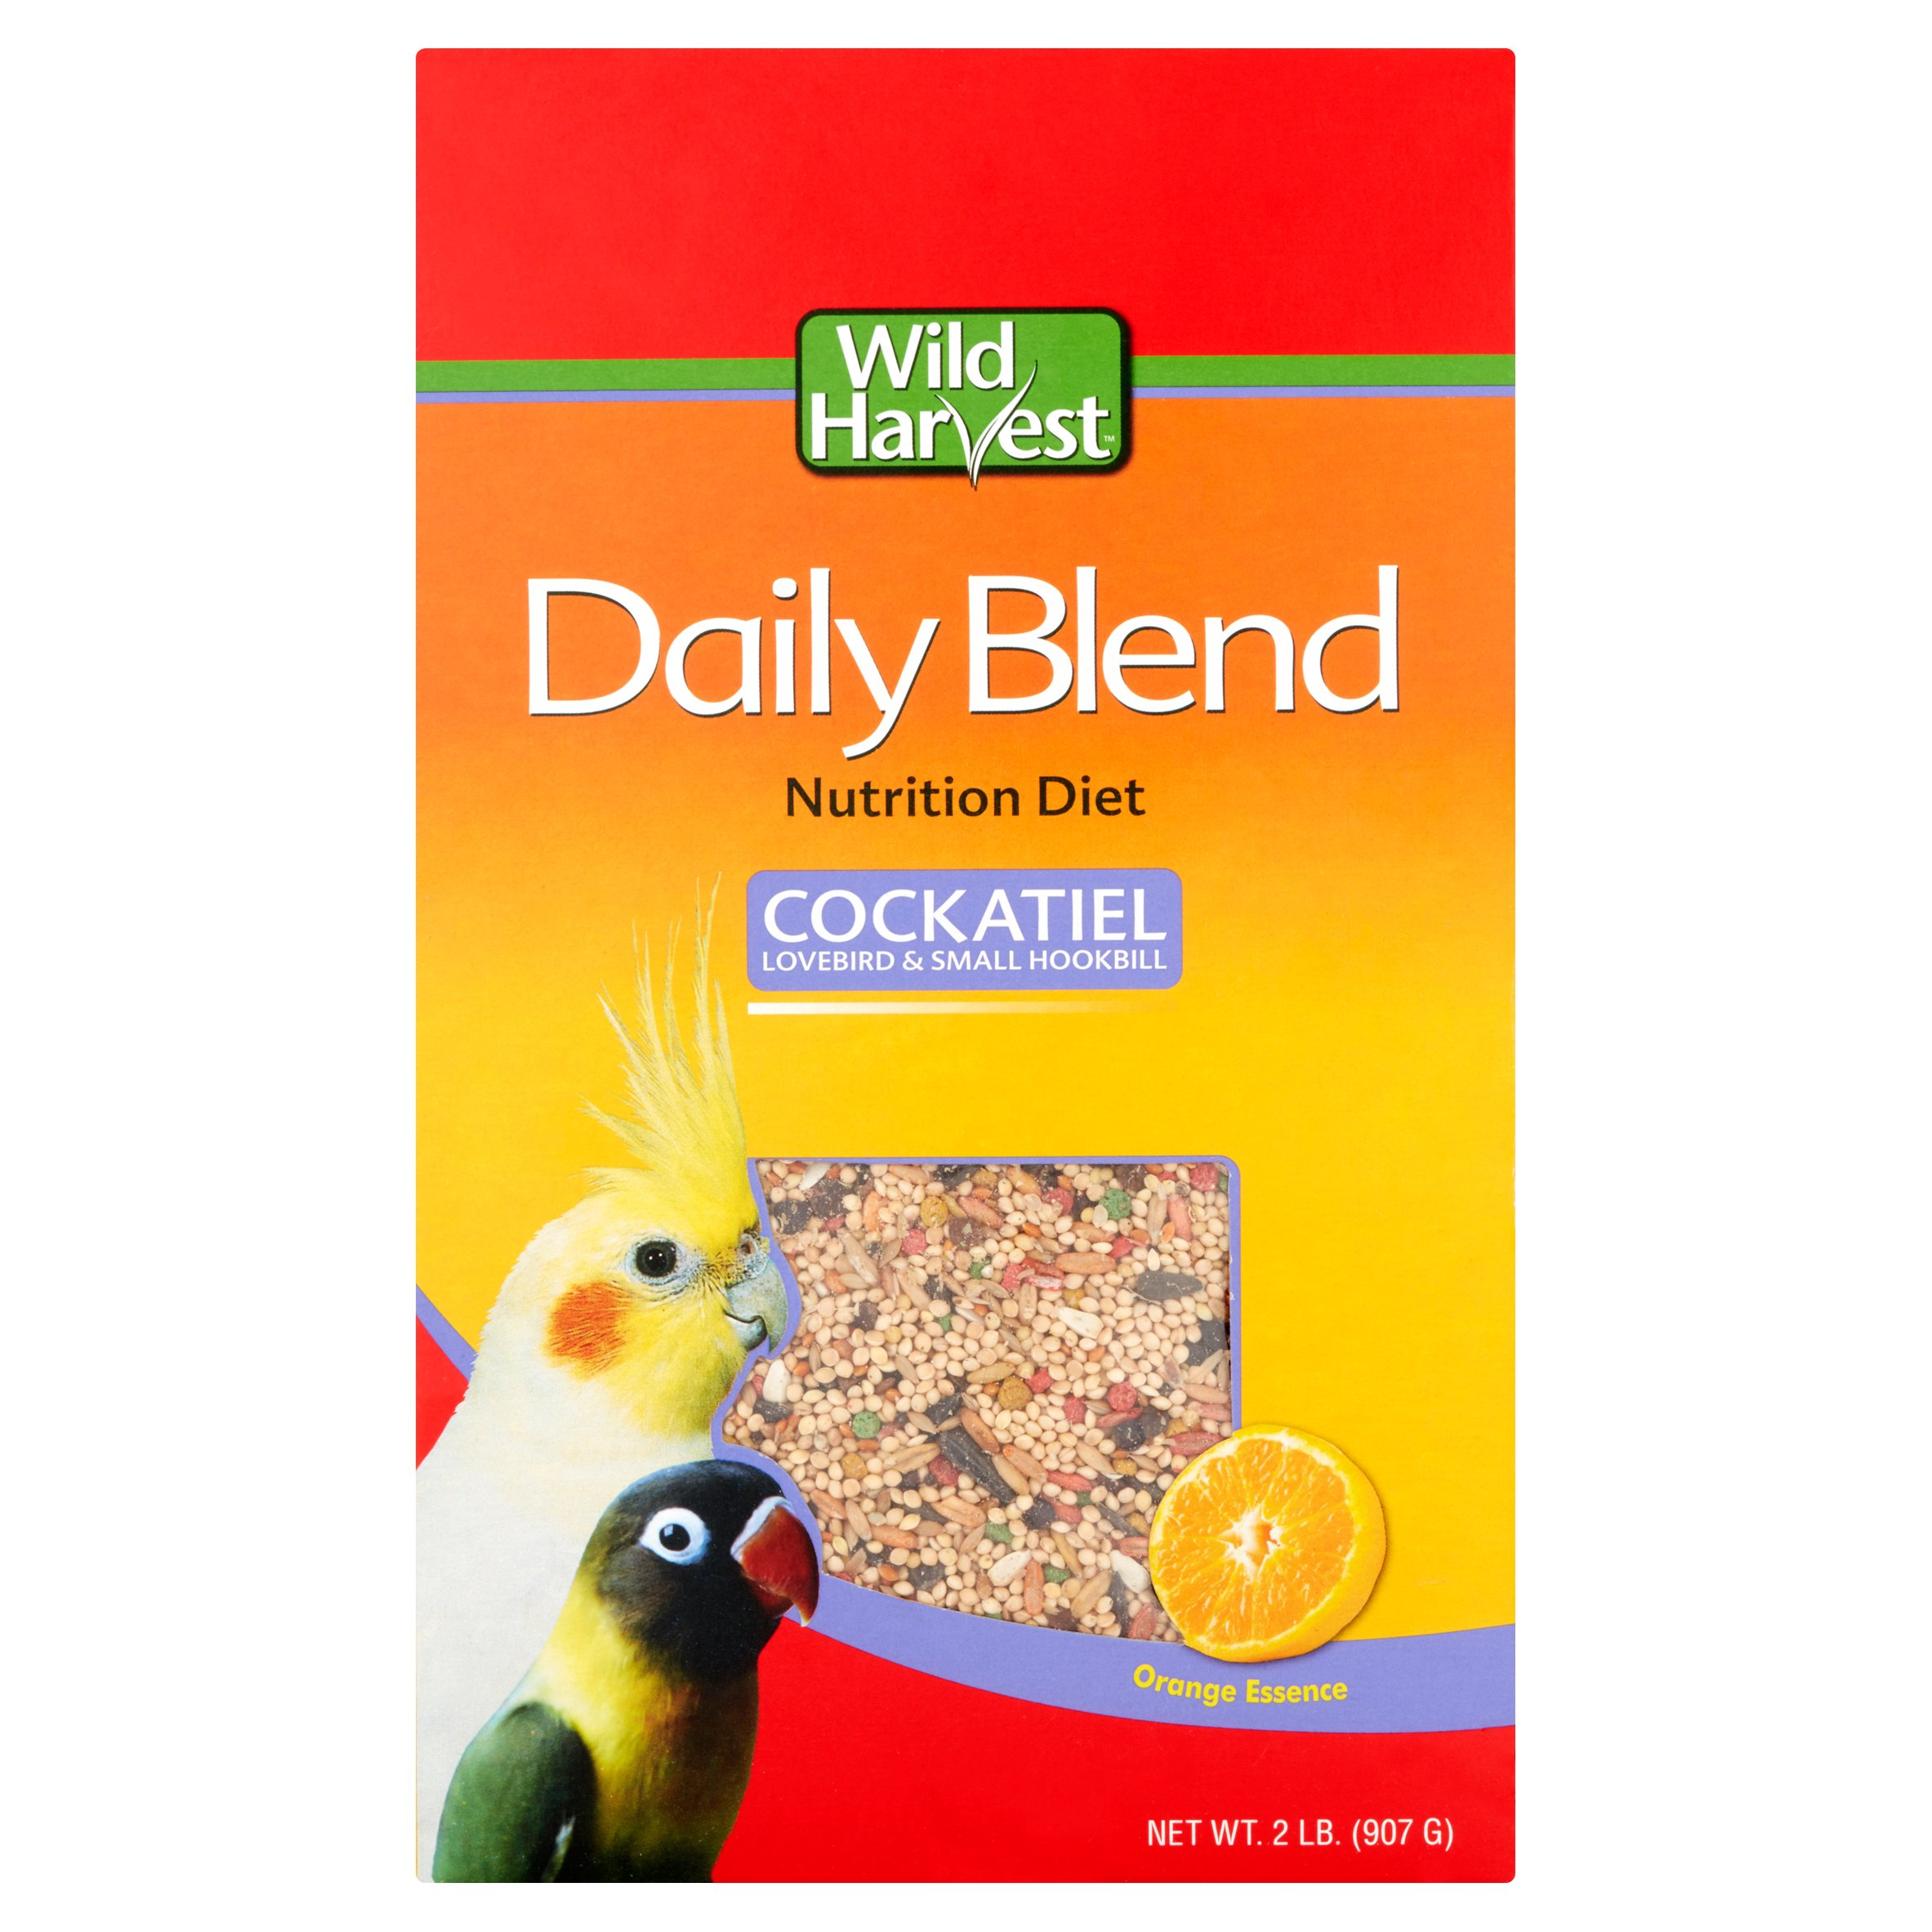 8In1 Pet Products Bird Food Premium Cockatiel Food, 2 lbs by United Pet Group, a division of Spectrum Brands, Inc.